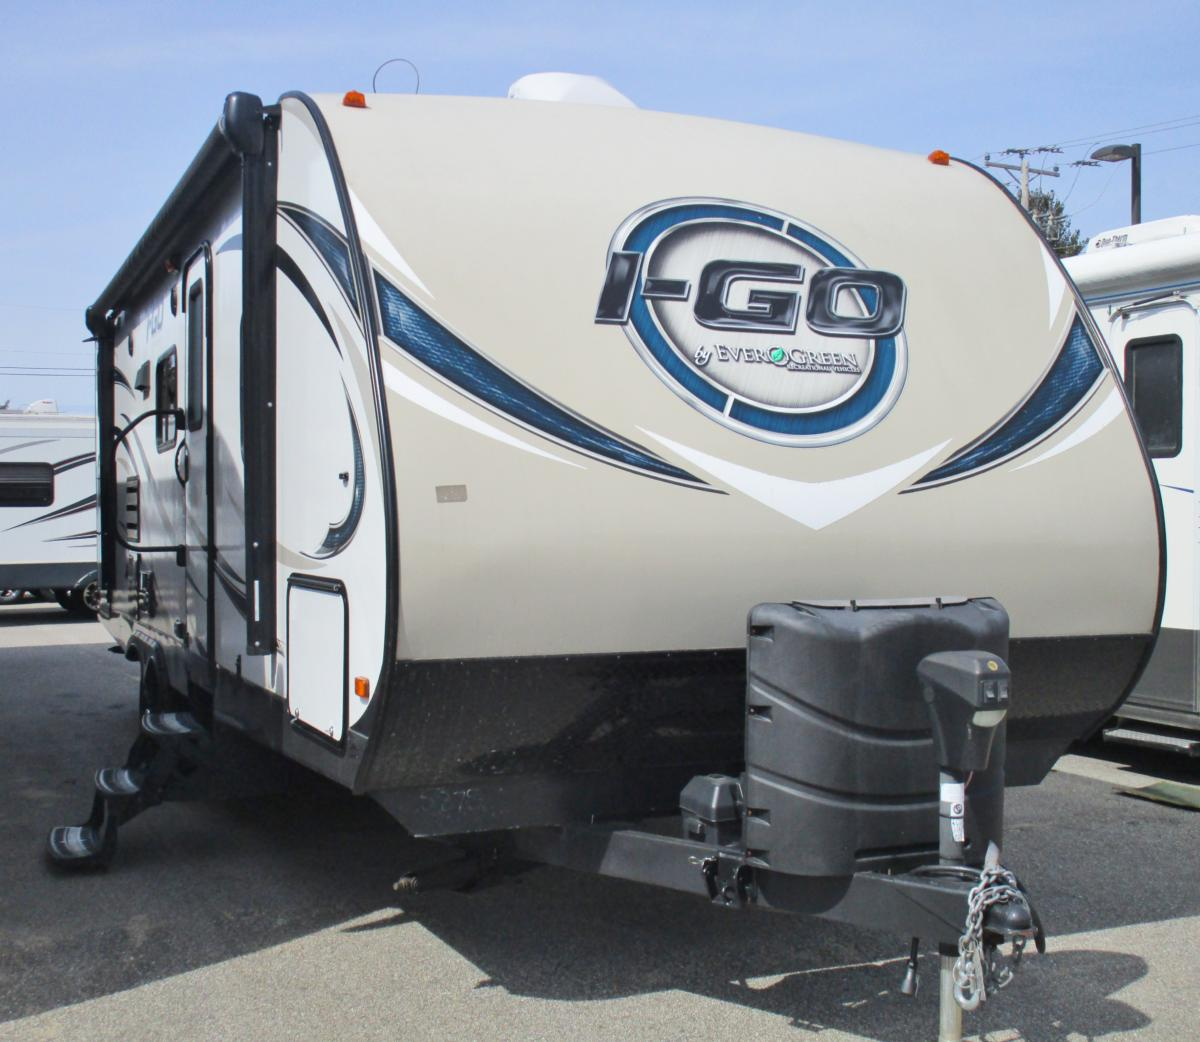 2016 IGO EVERGREEN 260BHS 29FT/1SLIDE TWO BUNK TRAVEL